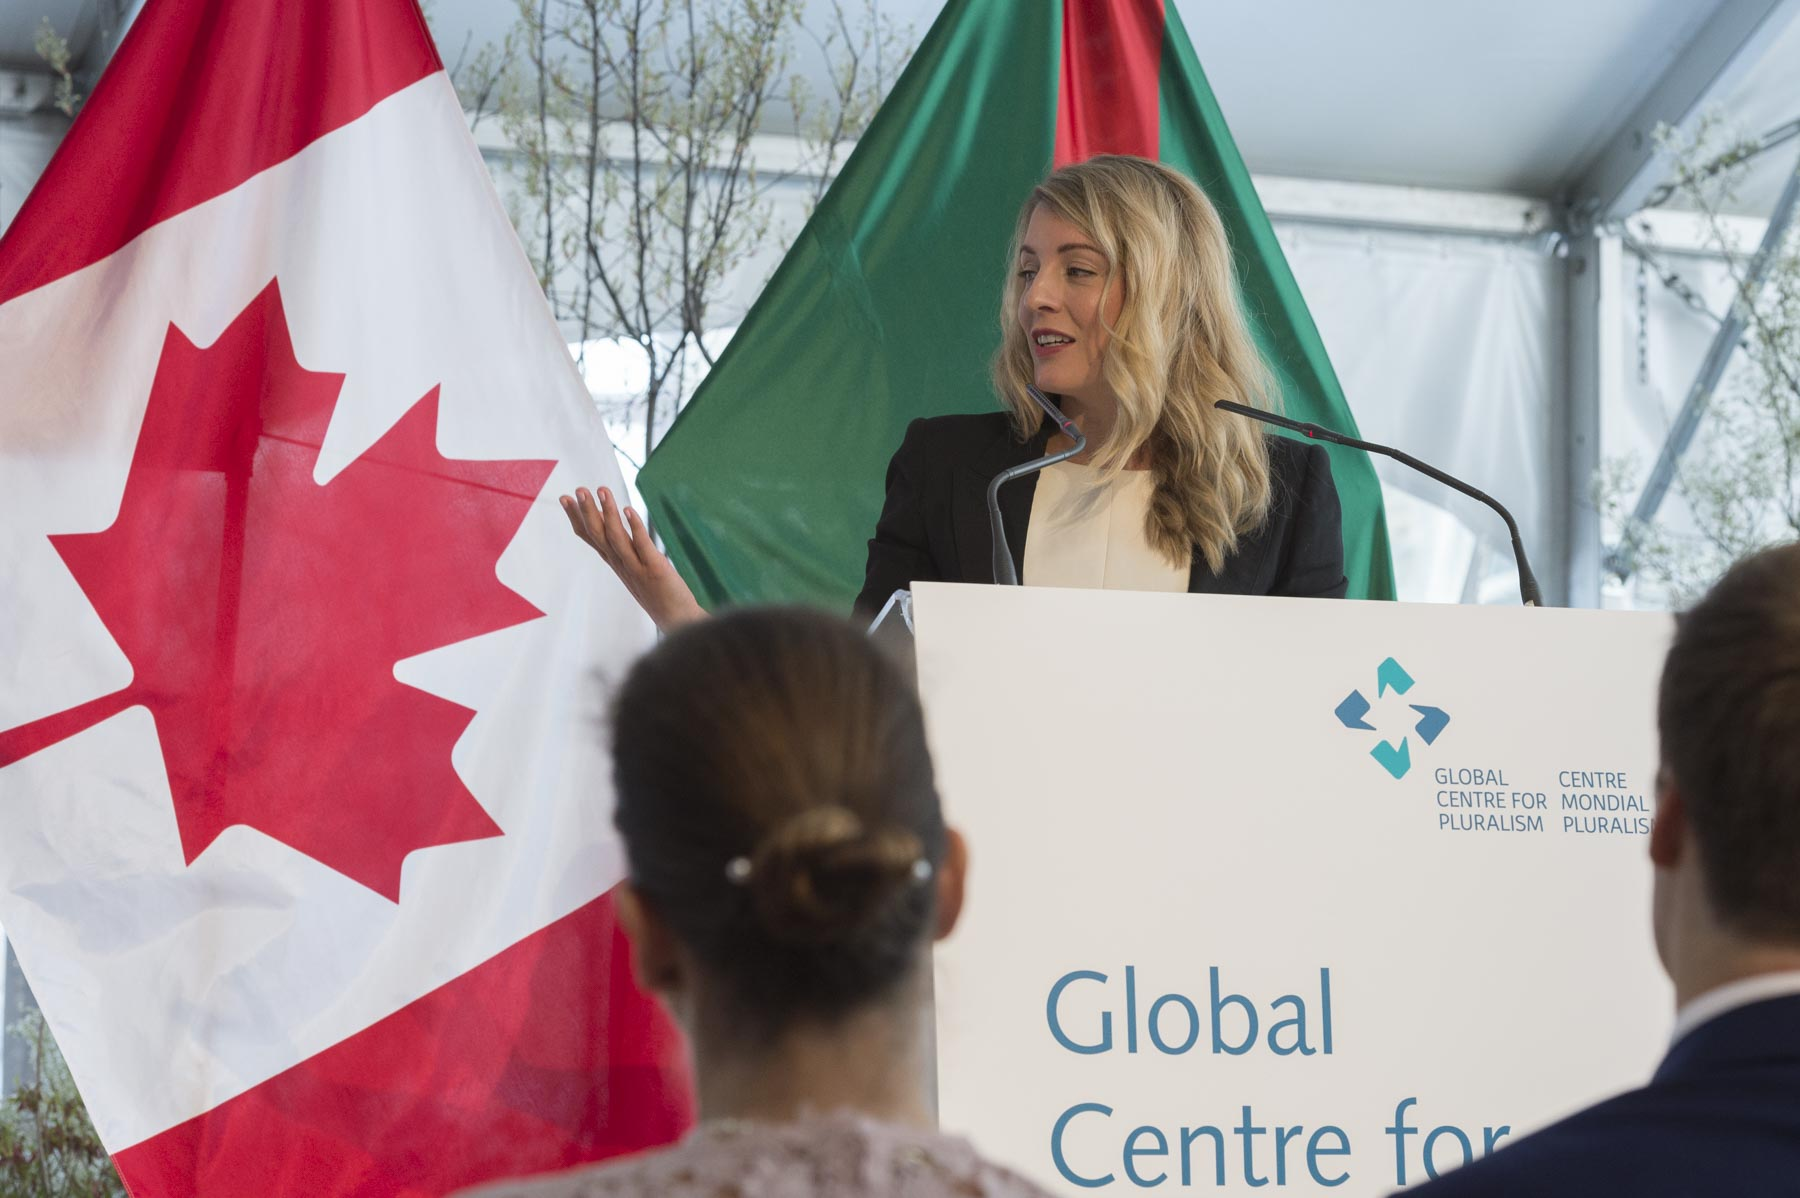 The Honourable Mélanie Joly, Minister of Canadian Heritage, also delivered an address.